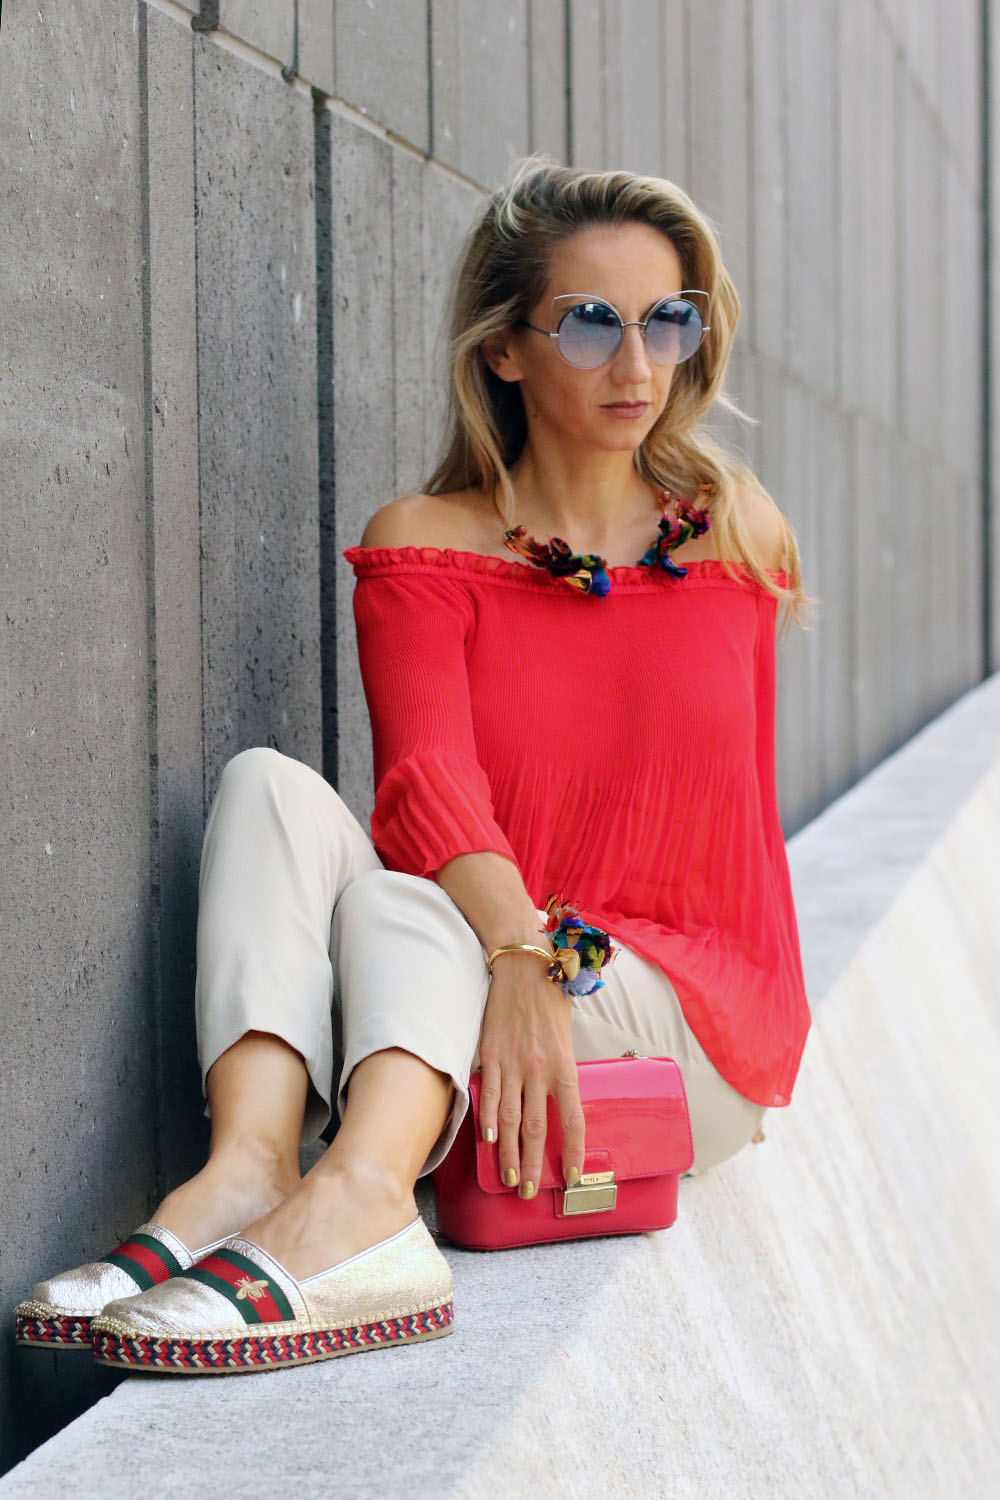 colourclub-modeblog-outfit-off-the-shoulder-top-gucci-shoes-furla-bag-thai-silk-juwelery-ornaments-lor11